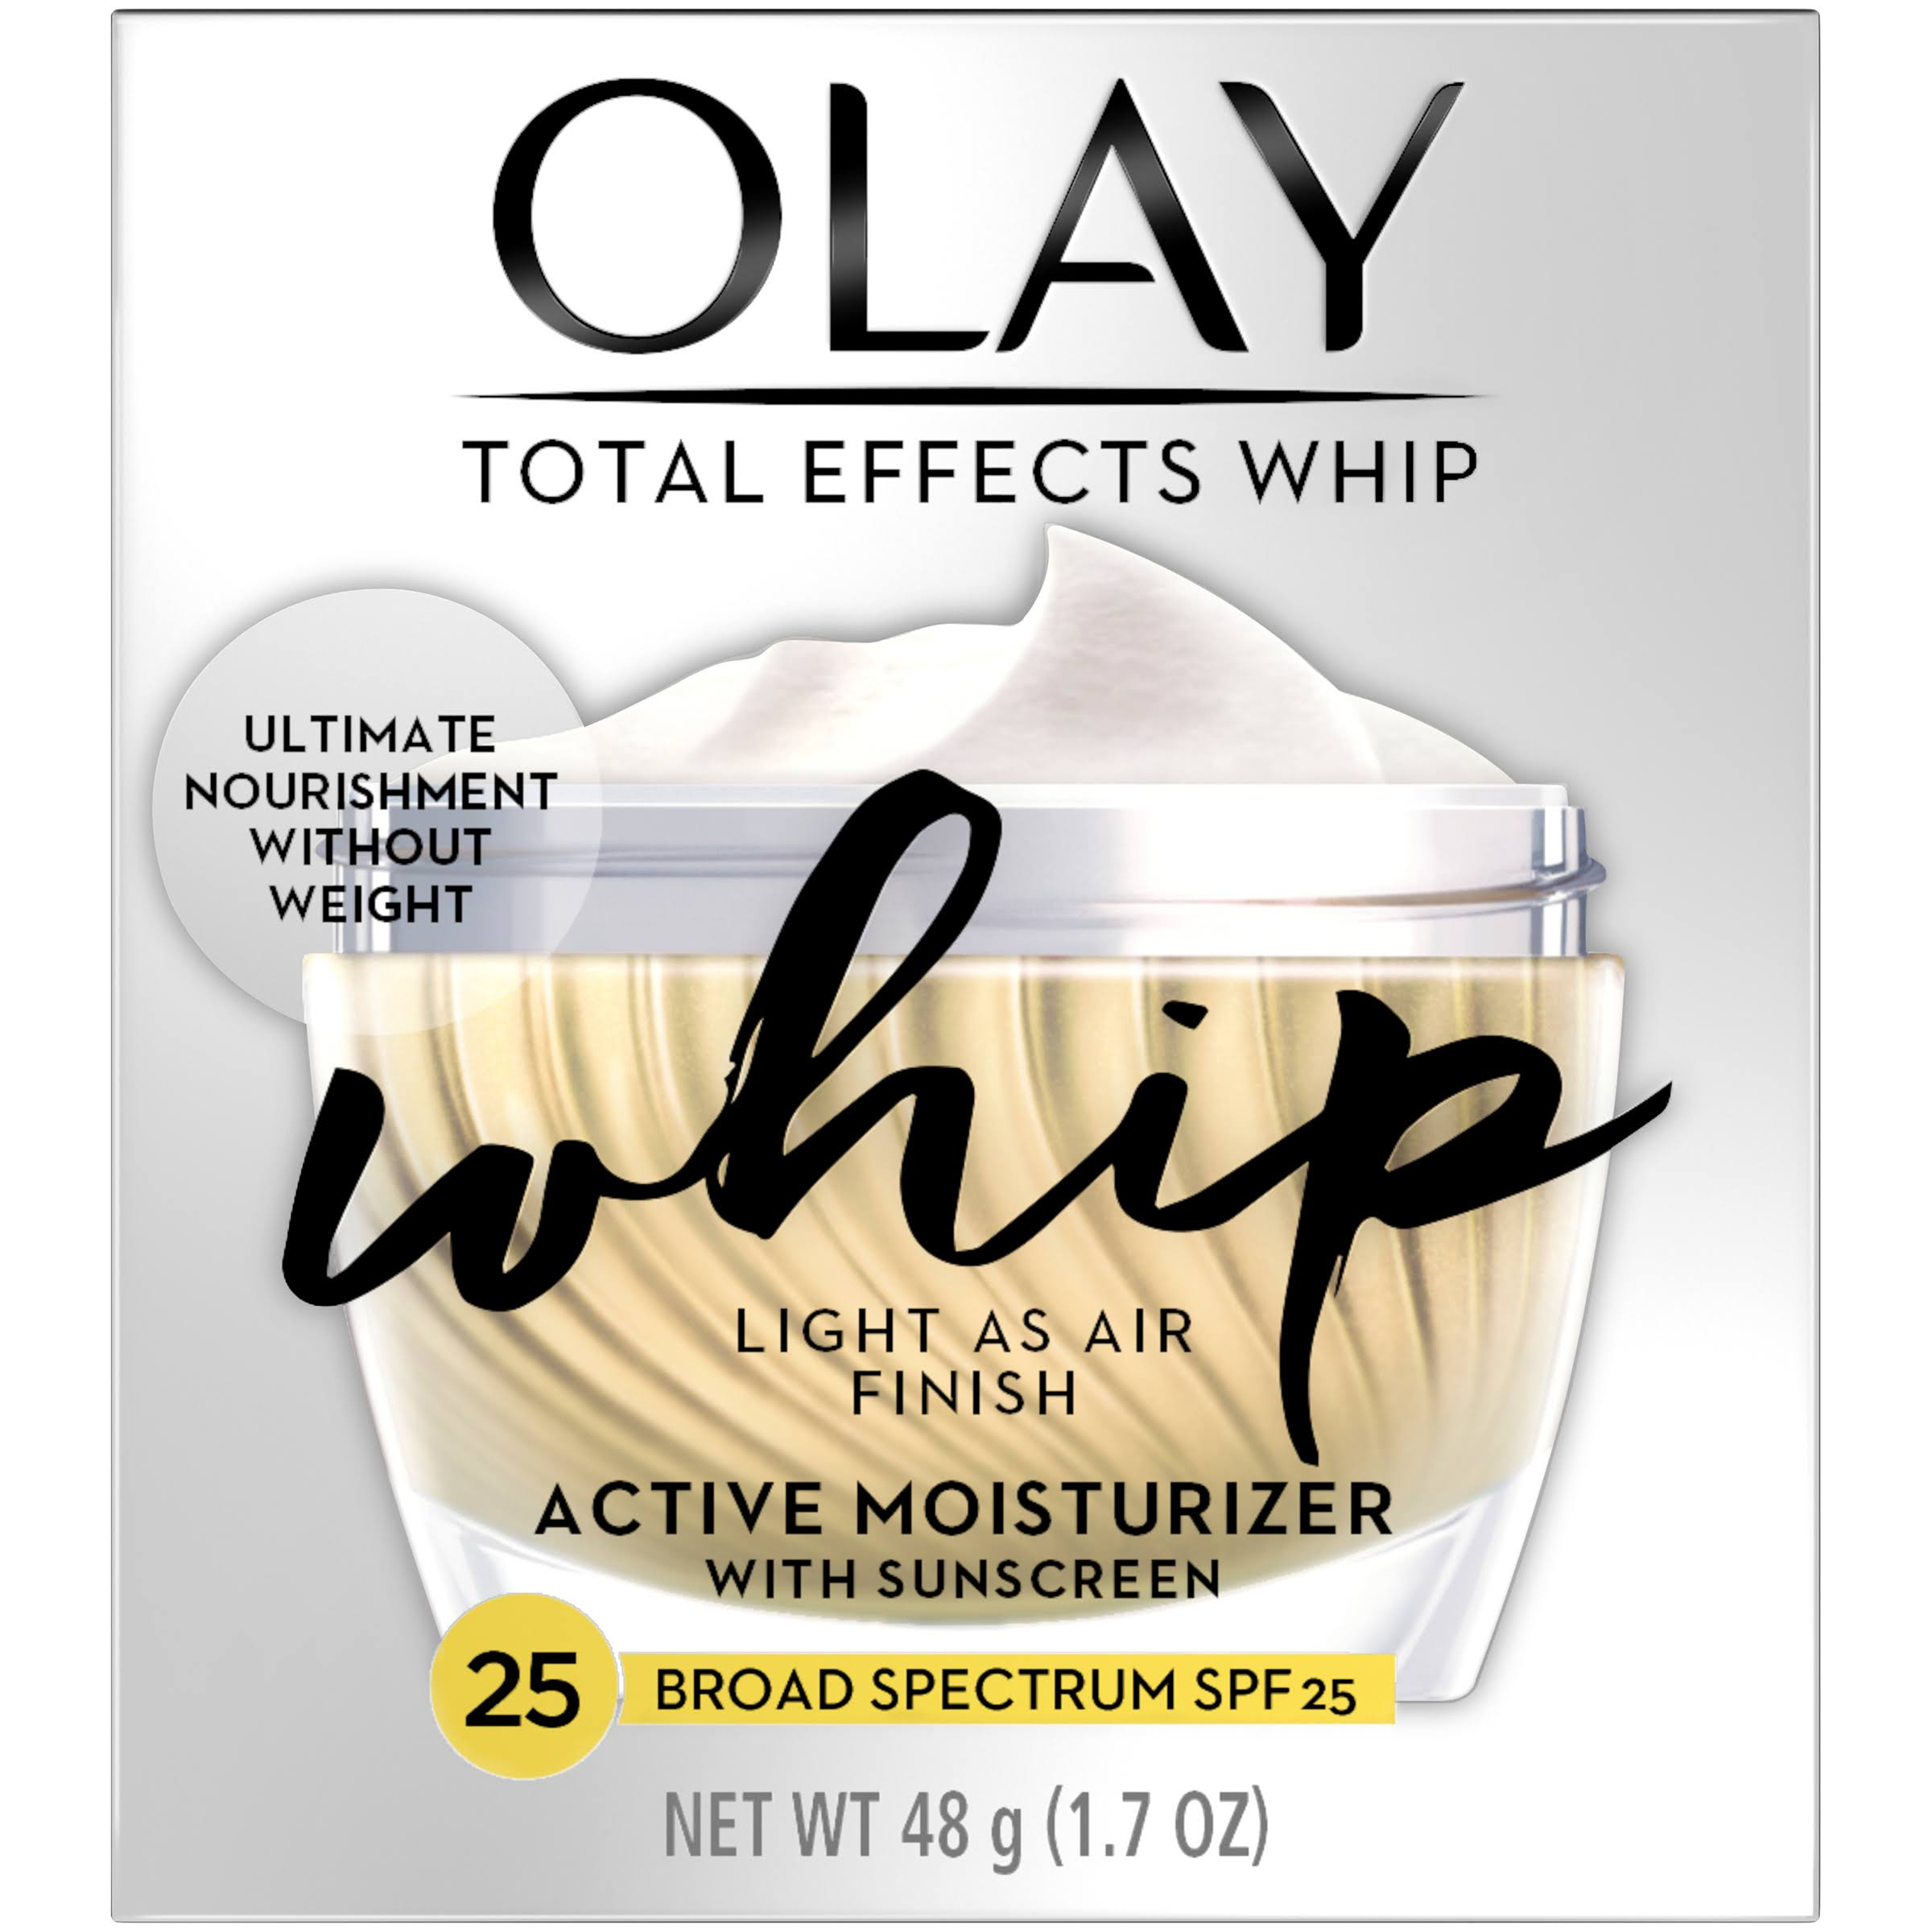 Olay Total Effects Whip Active Moisturizer - SPF 25, 1.7oz